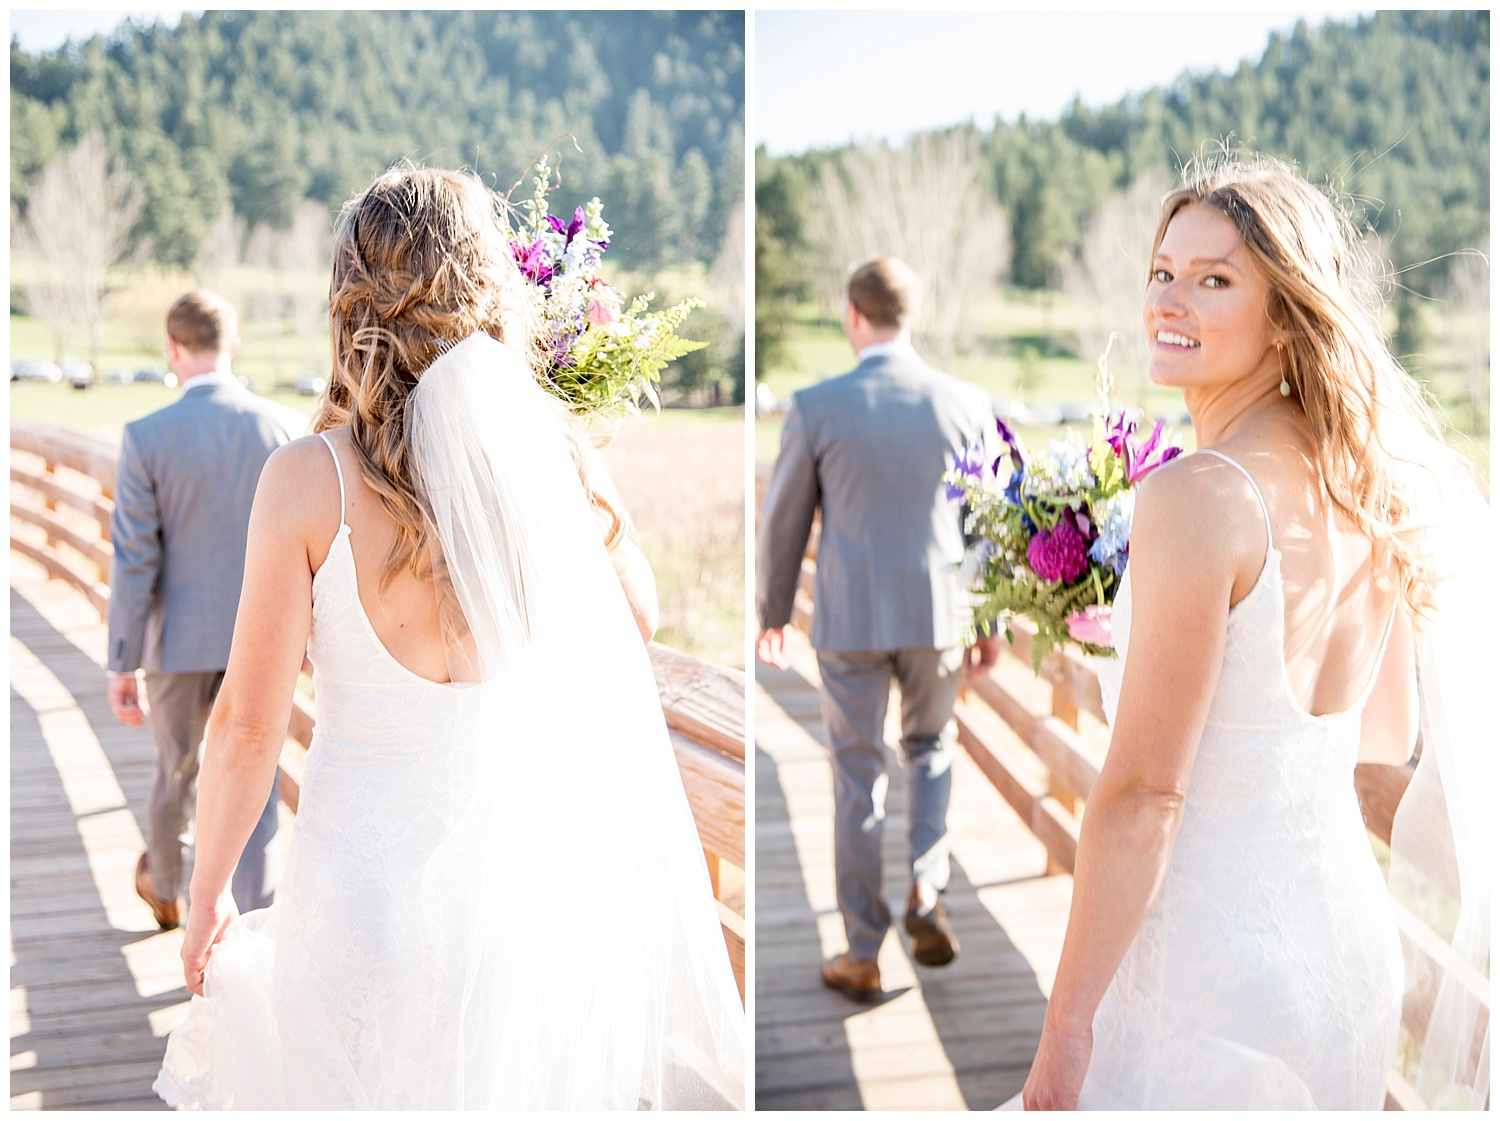 Farm_Wedding_Photographer_Evergreen_Lake_House_Colorado_Barn_Destination_Hawaii_Photography_Mountain_Weddings_025.jpg